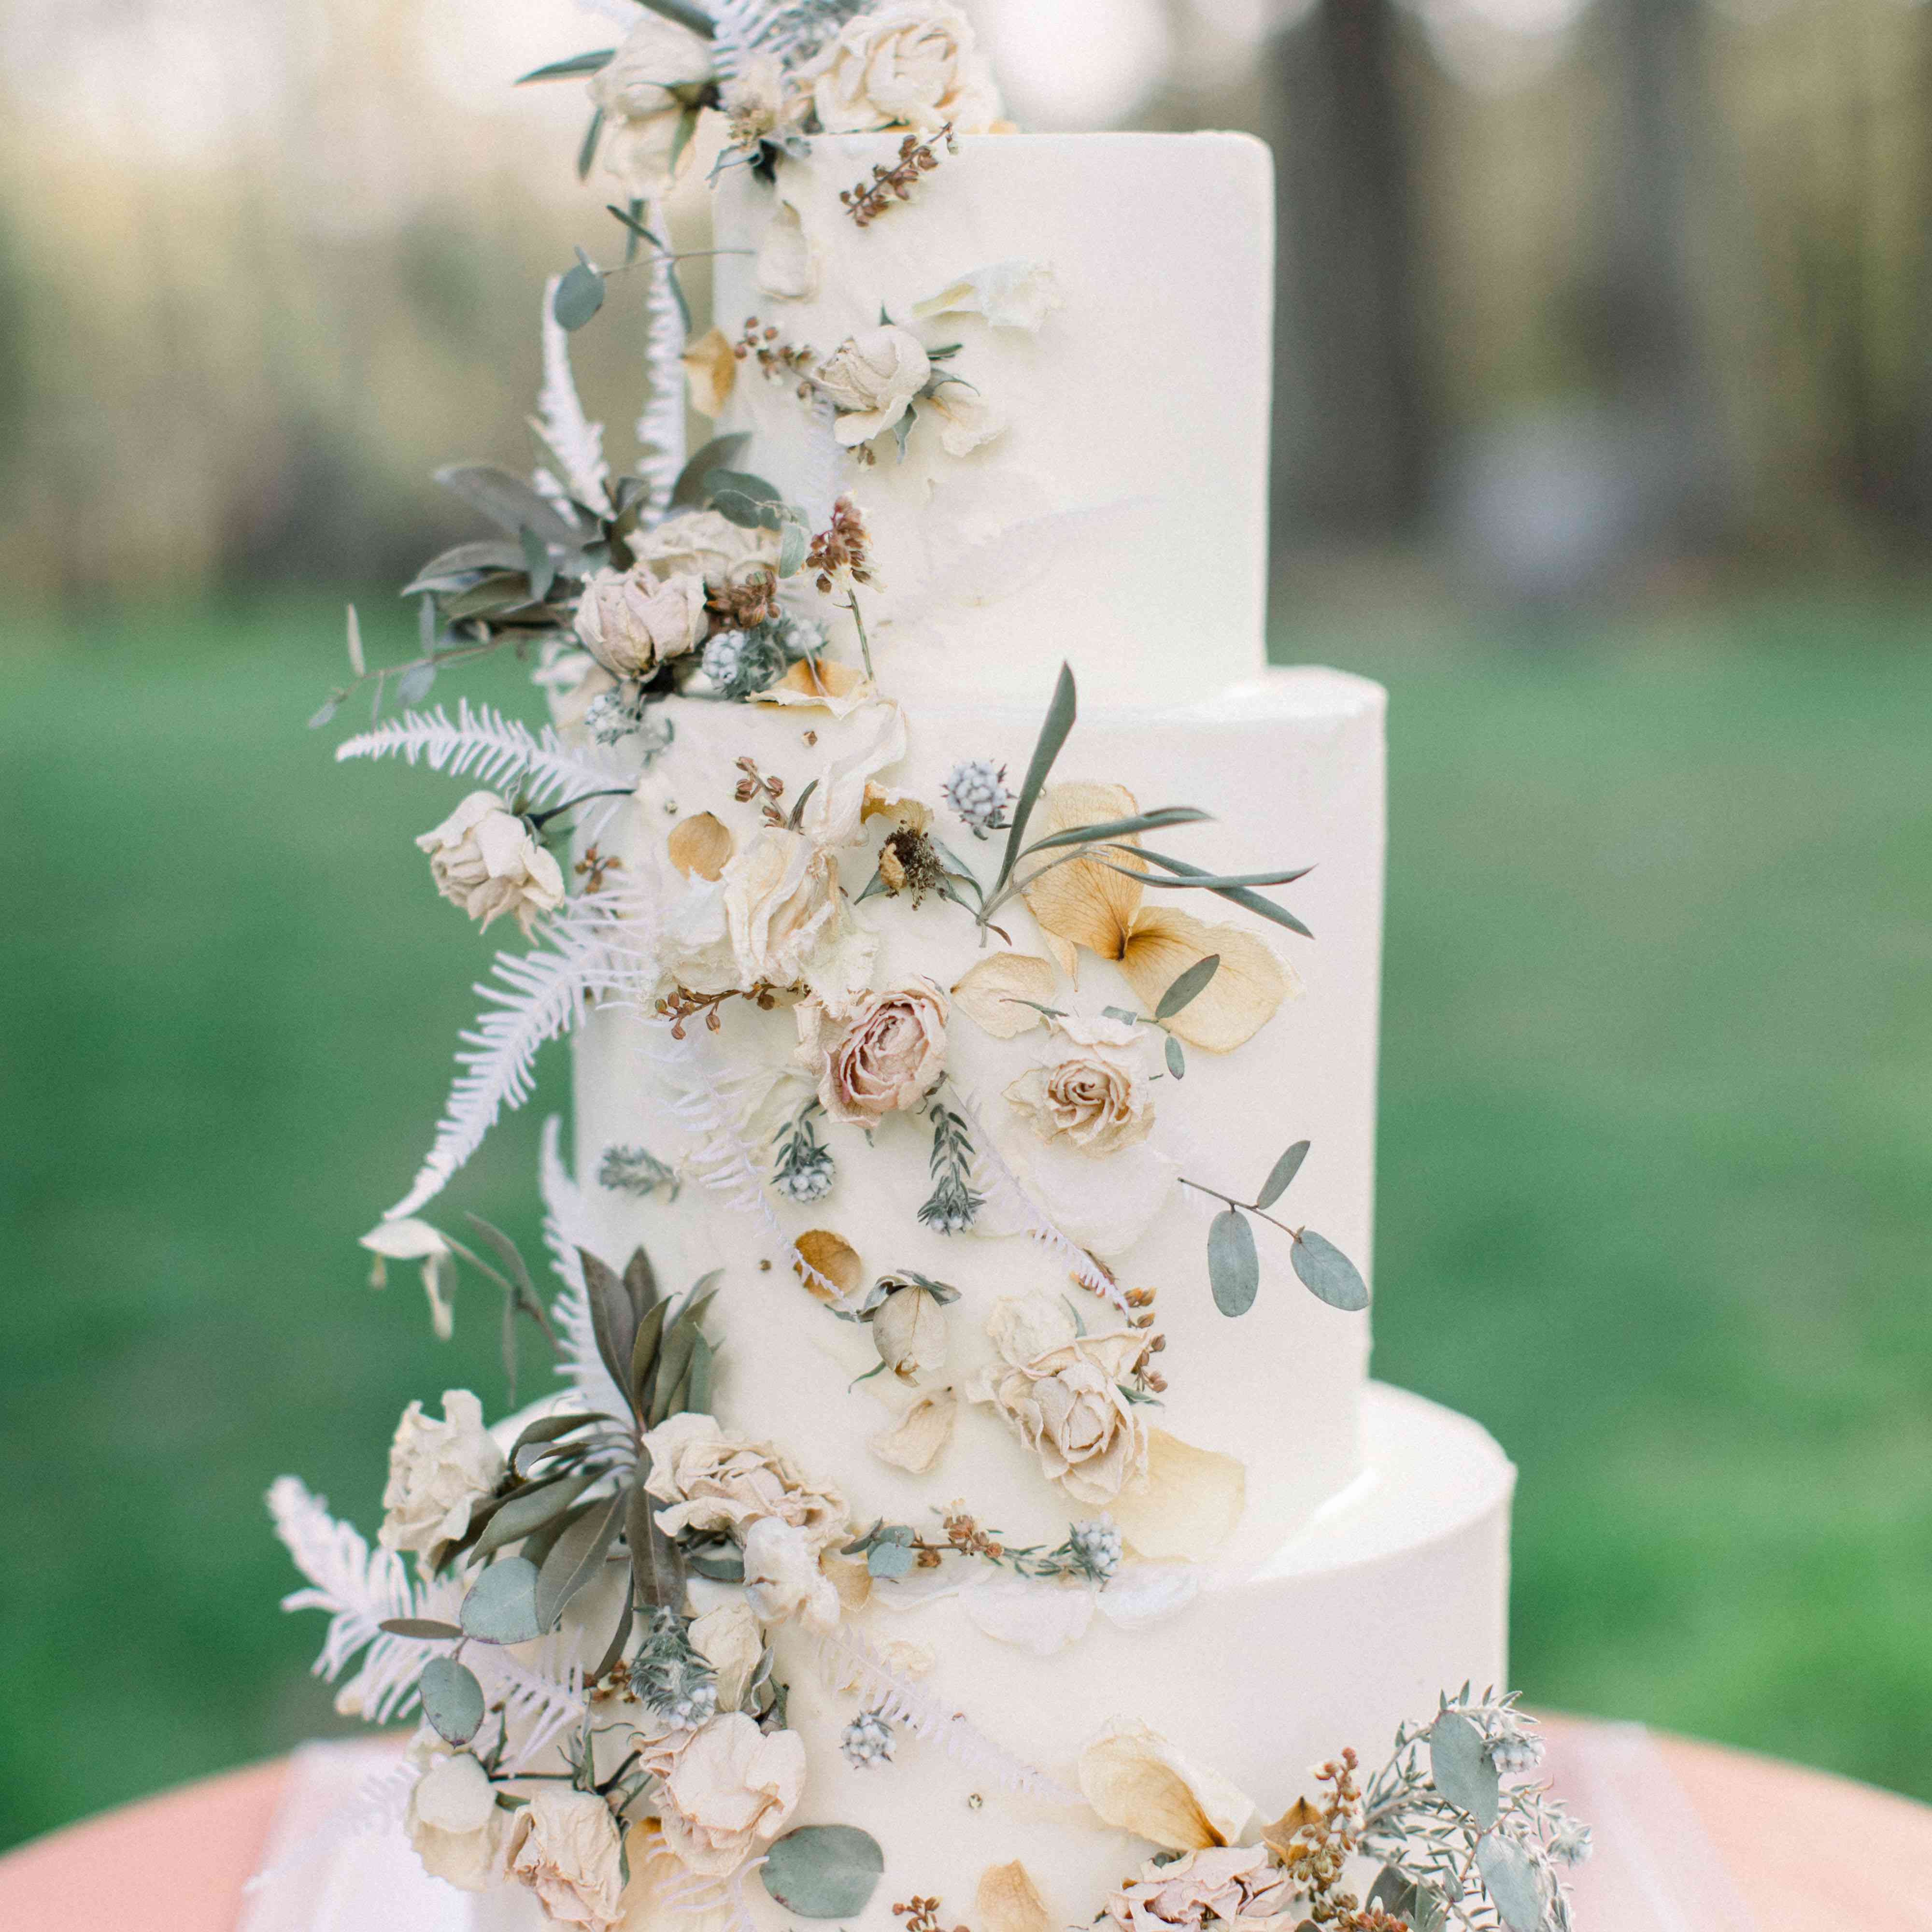 Tiered white wedding cake with leaves and dried floral accents